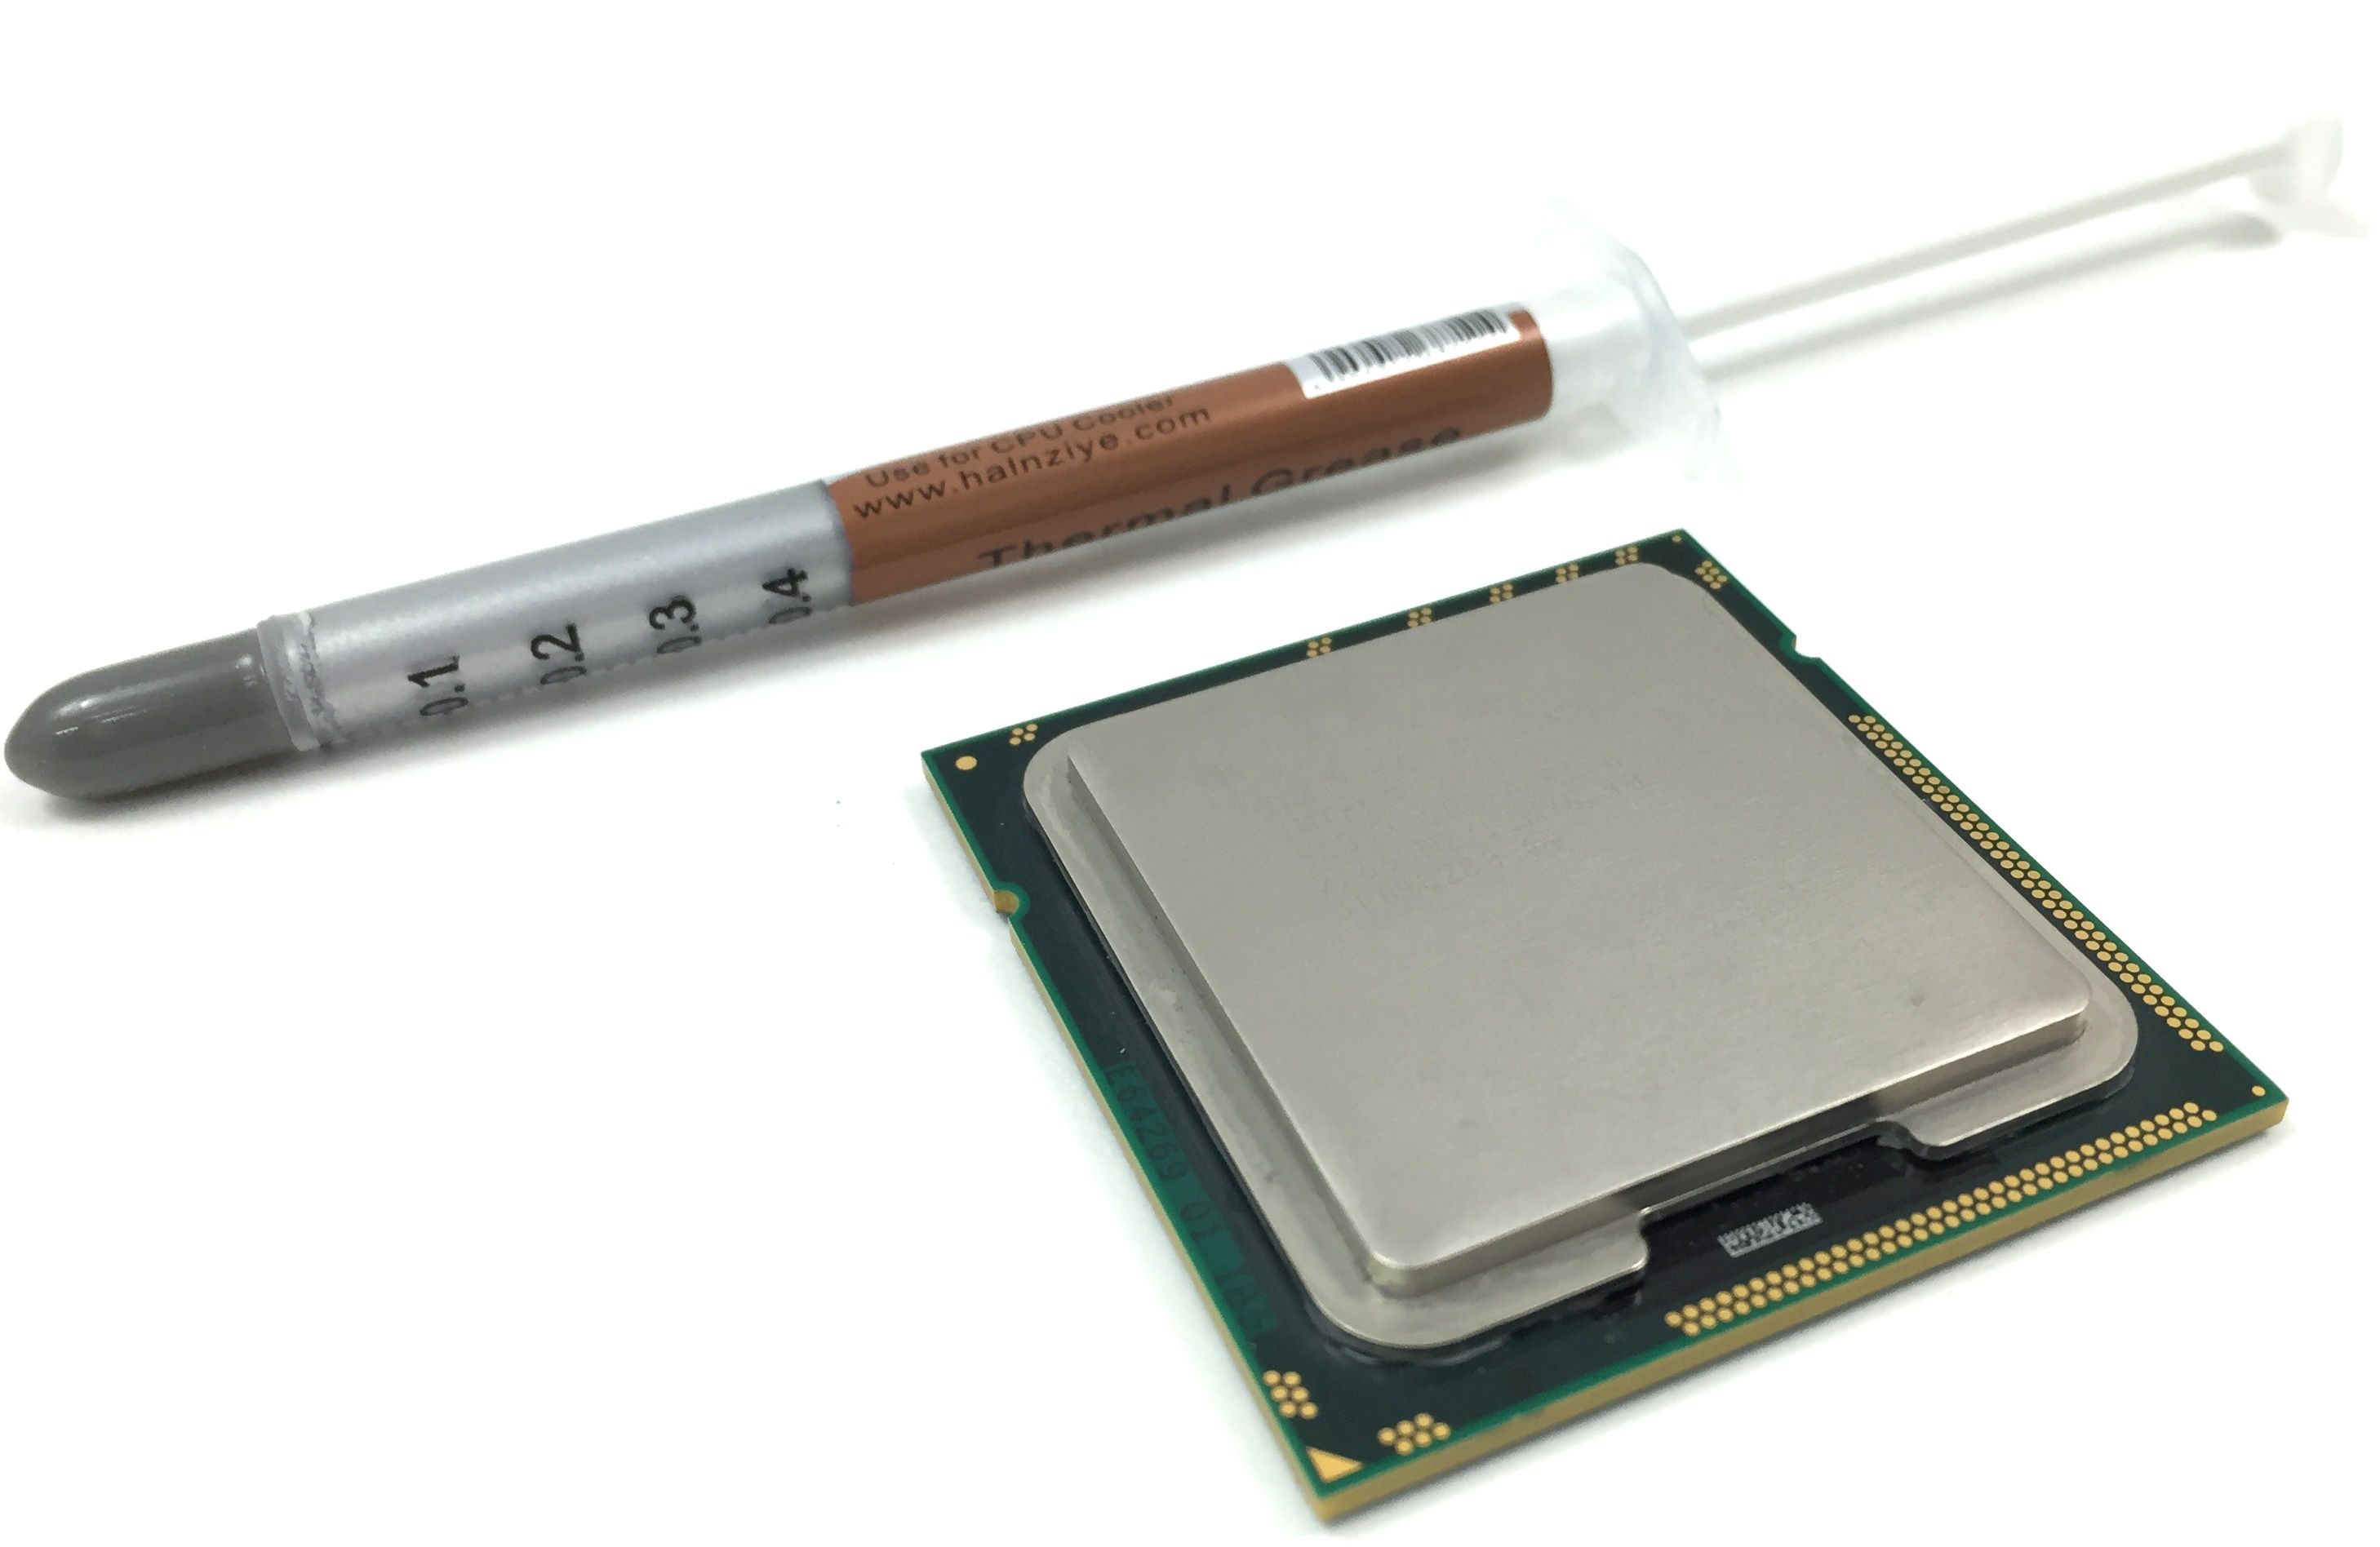 Intel Dual Core Xeon 7030 2.8GHz 2MB Ppga604 Processor (SL8UB)